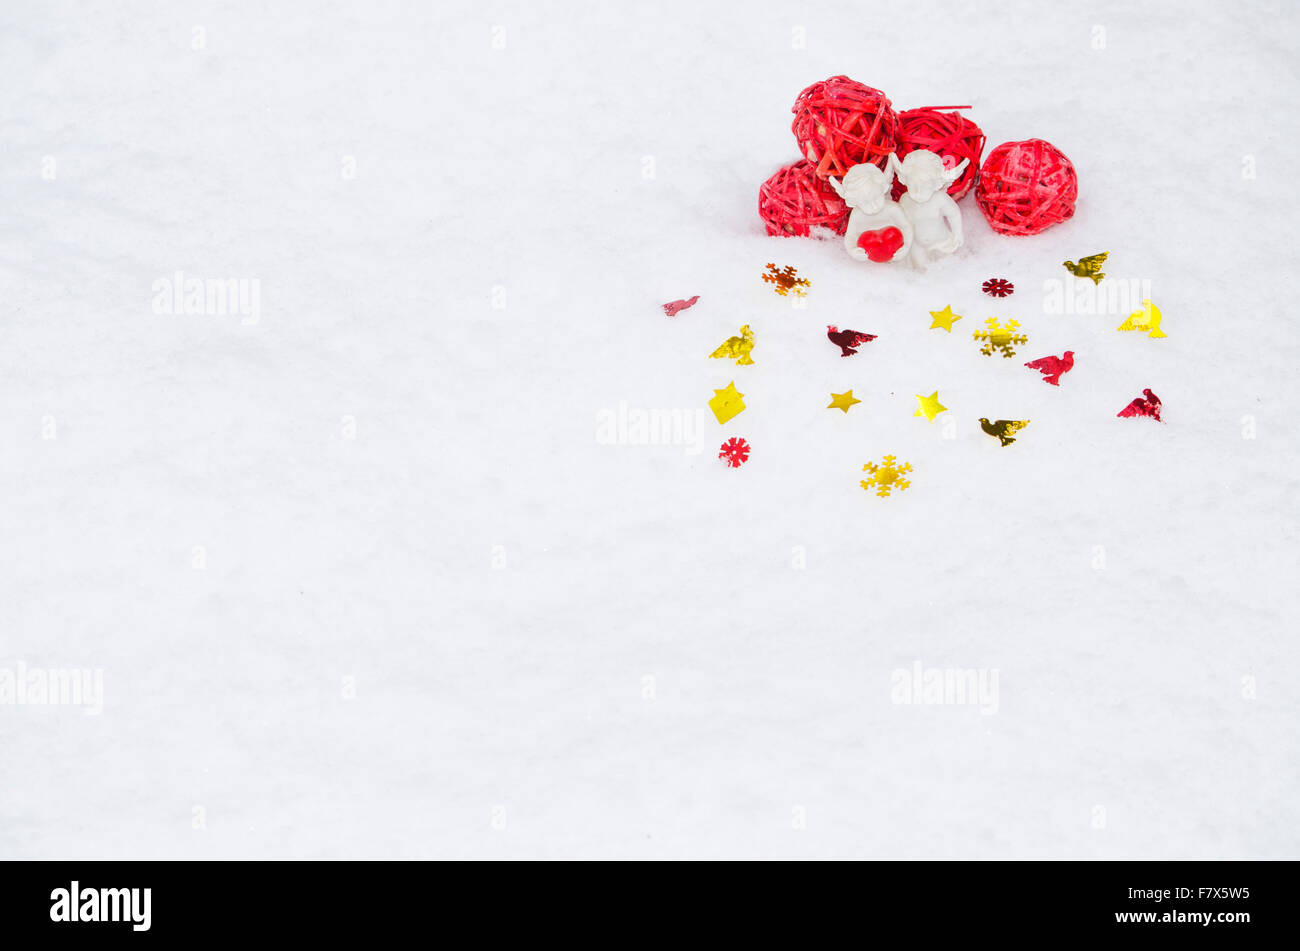 angels with heart on snow - Stock Image